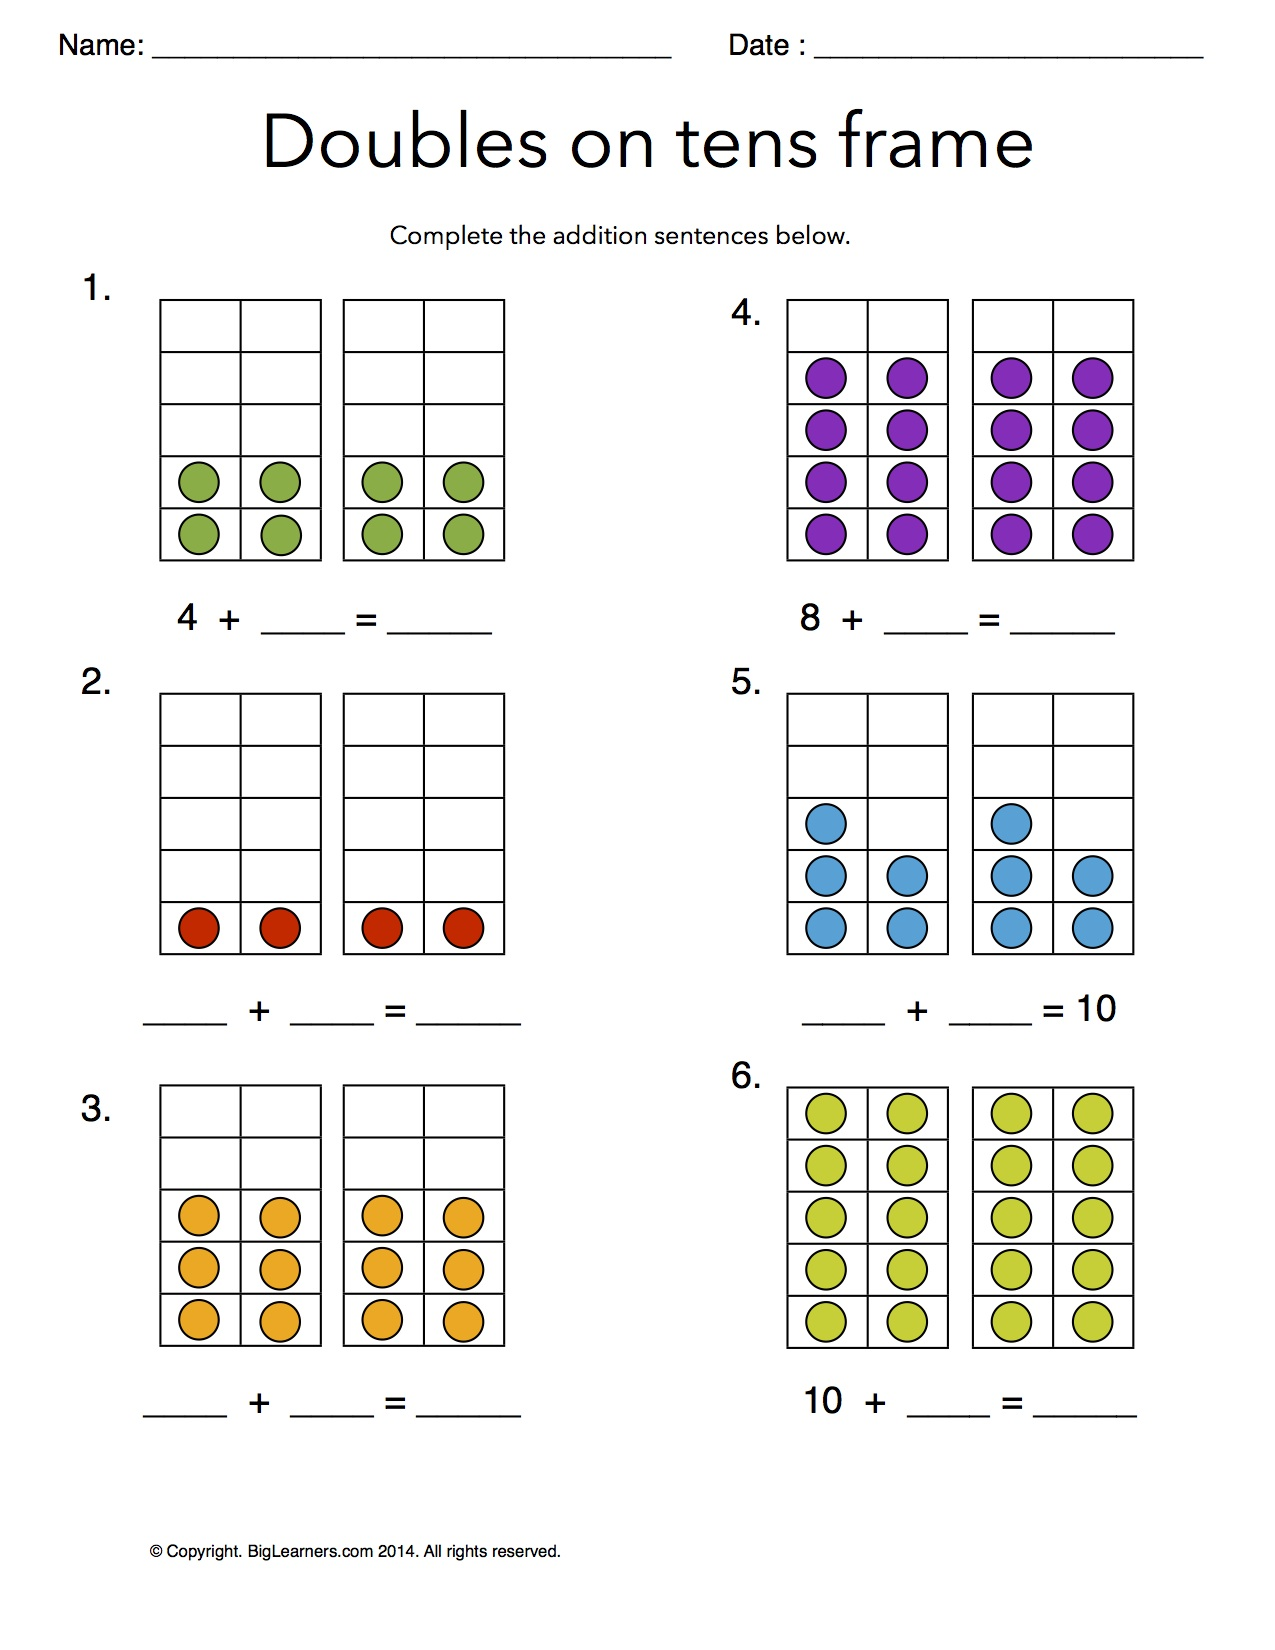 Uncategorized Common Core Math Worksheets For First Grade grade 1 free common core math worksheets biglearners preview image for worksheet with title doubles on tens frames